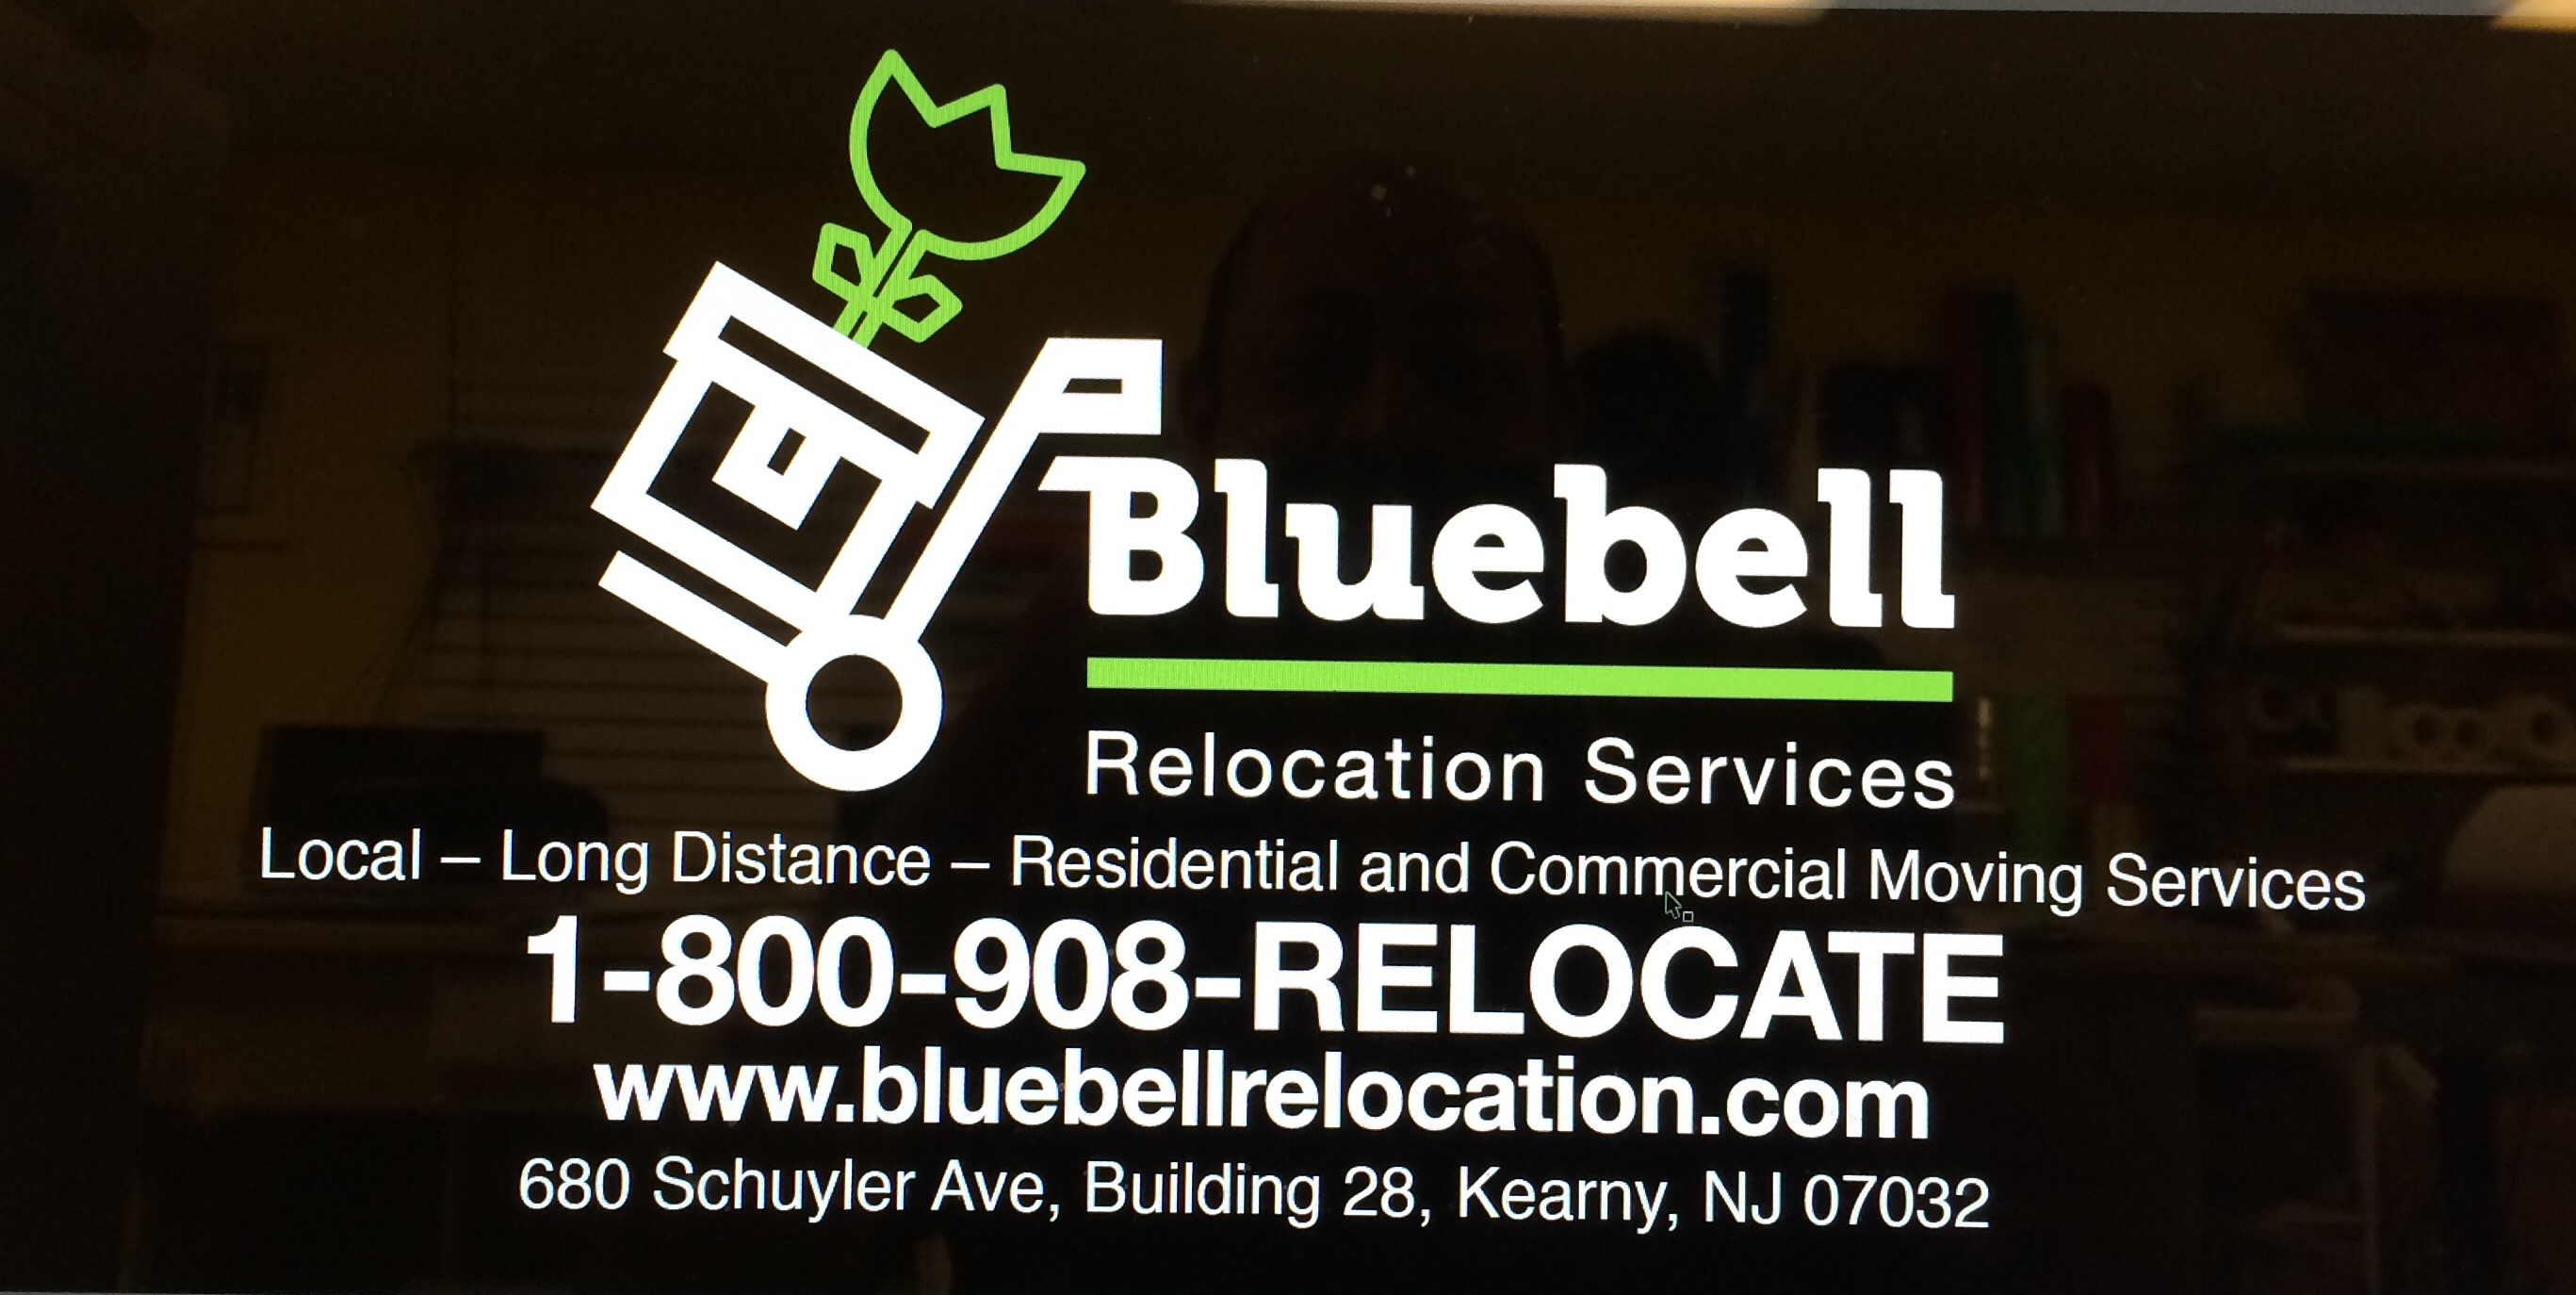 bluebell relocation services kearny com bluebell relocation services image bluebell relocation services photo 1